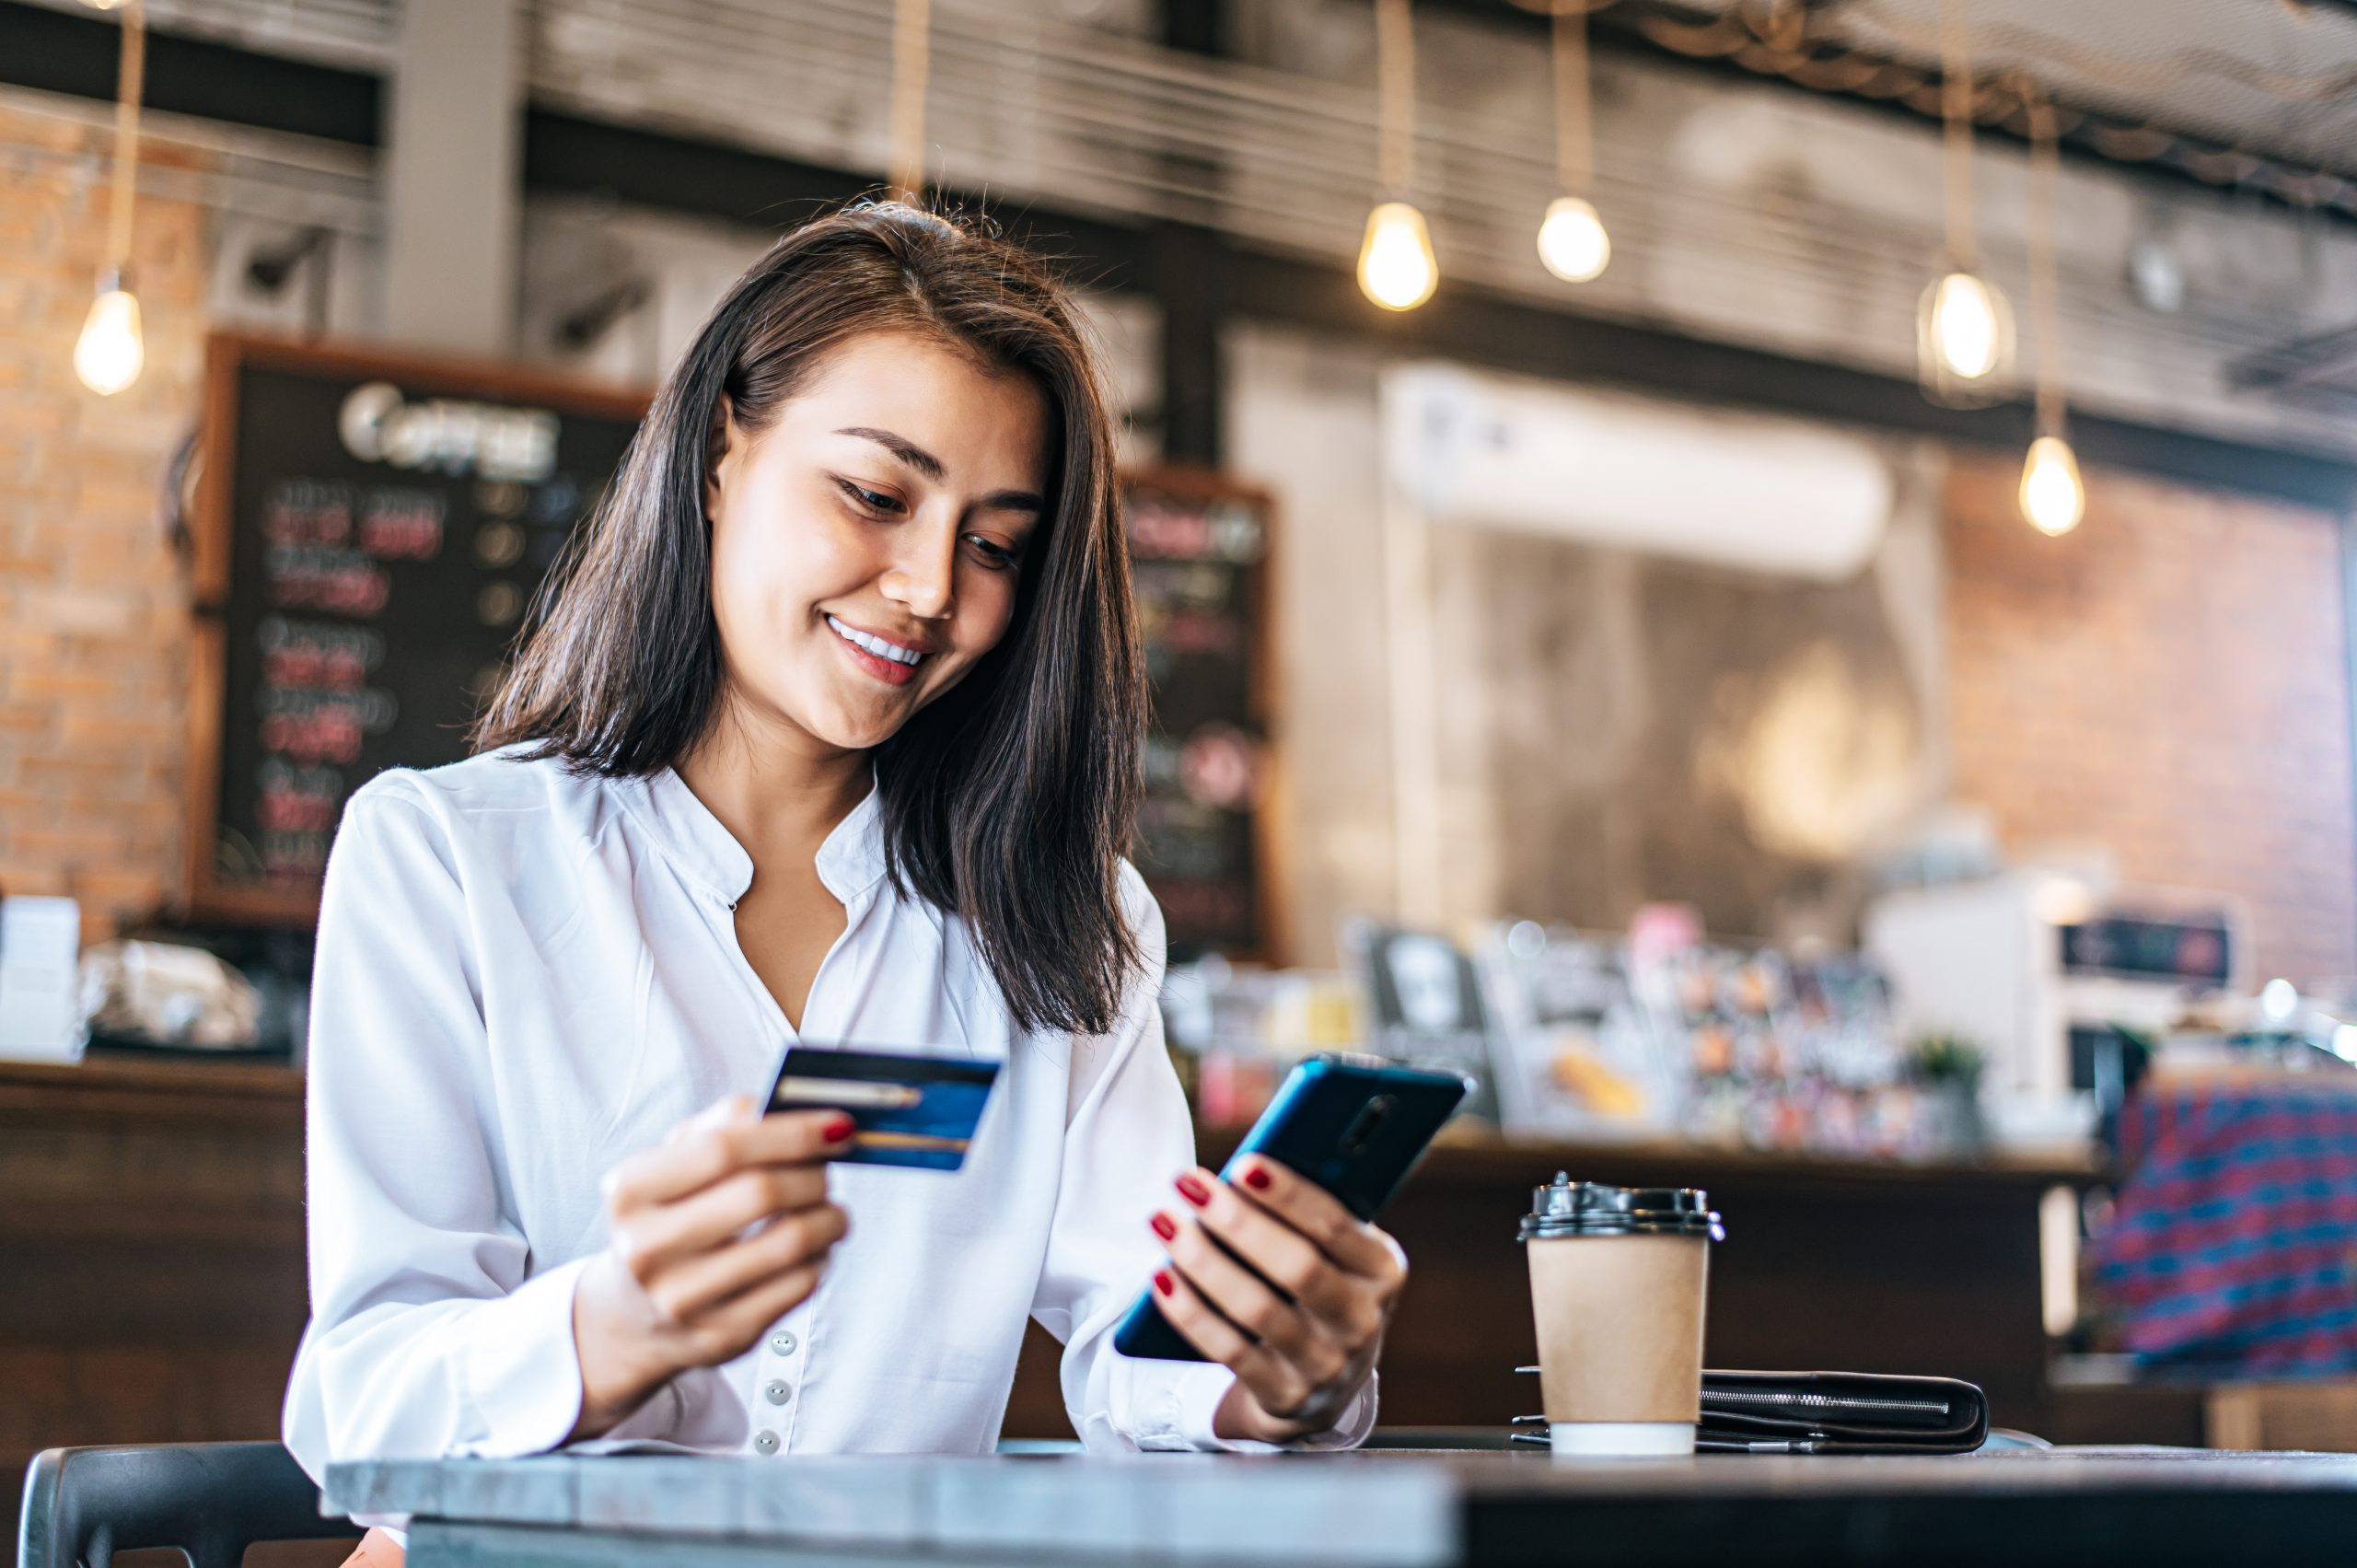 Payment options for e-commerce